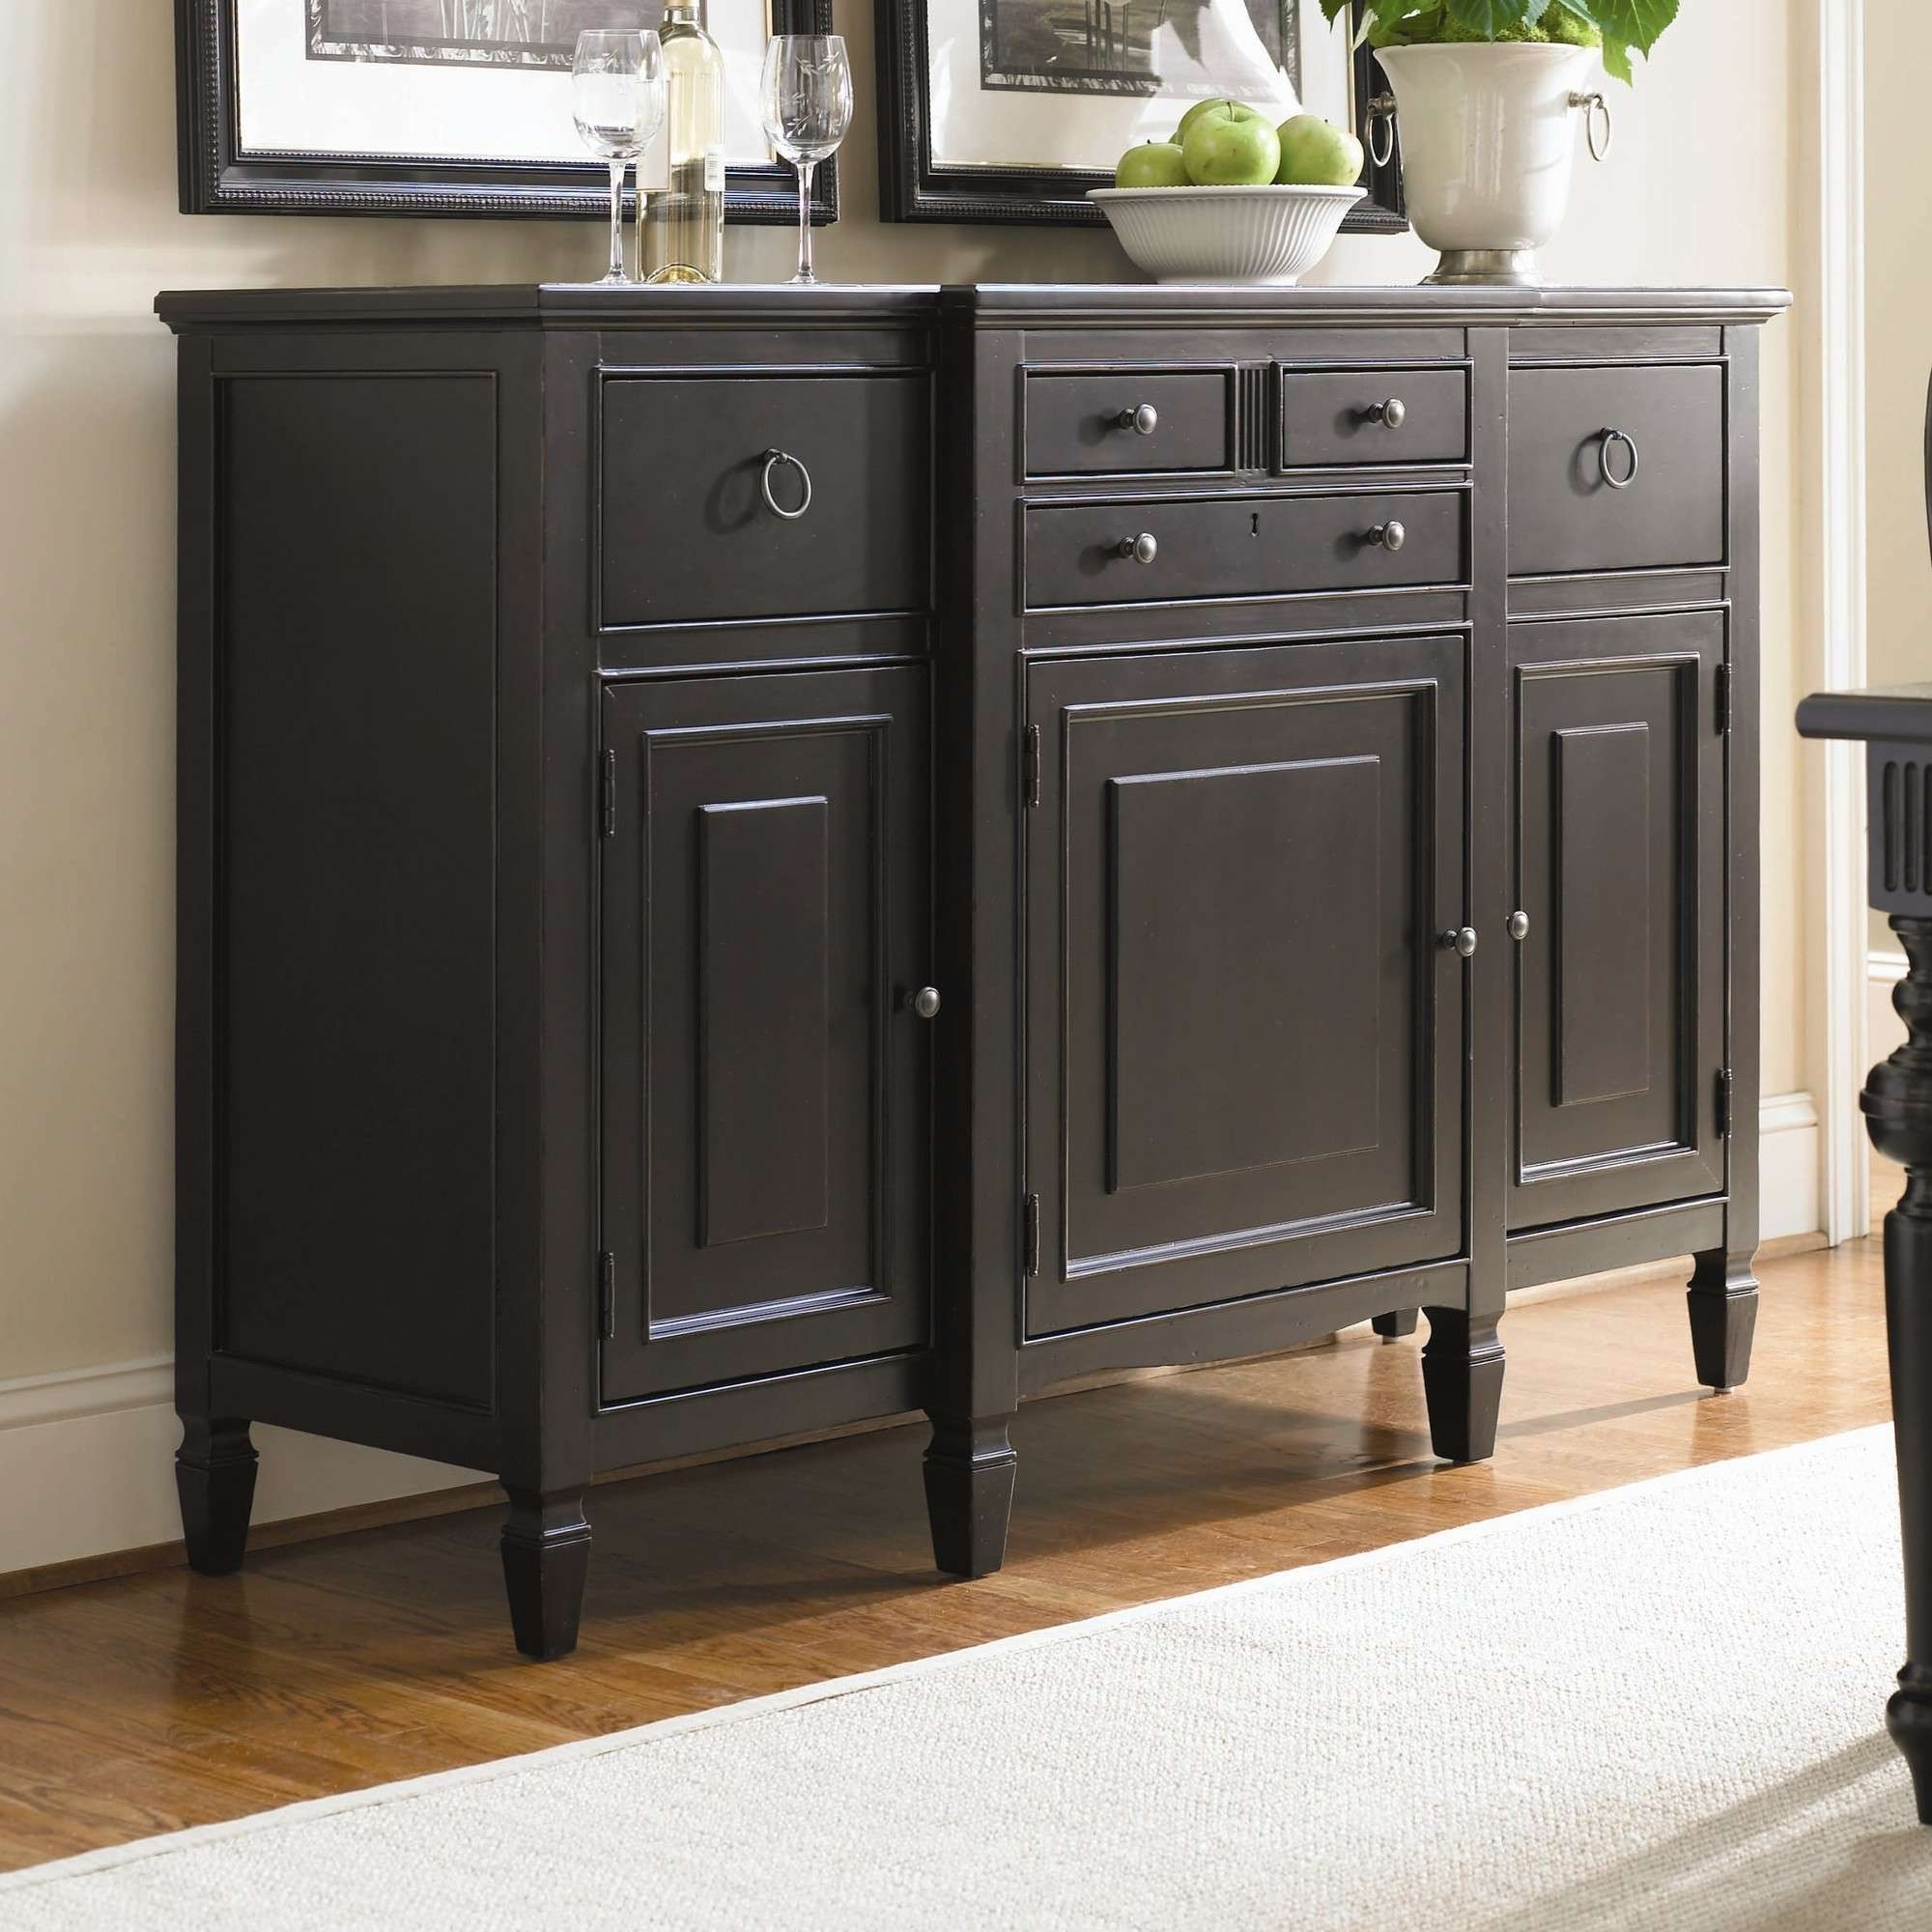 Beautiful Sideboard Buffet Table – Bjdgjy Regarding Sideboards And Tables (View 3 of 20)